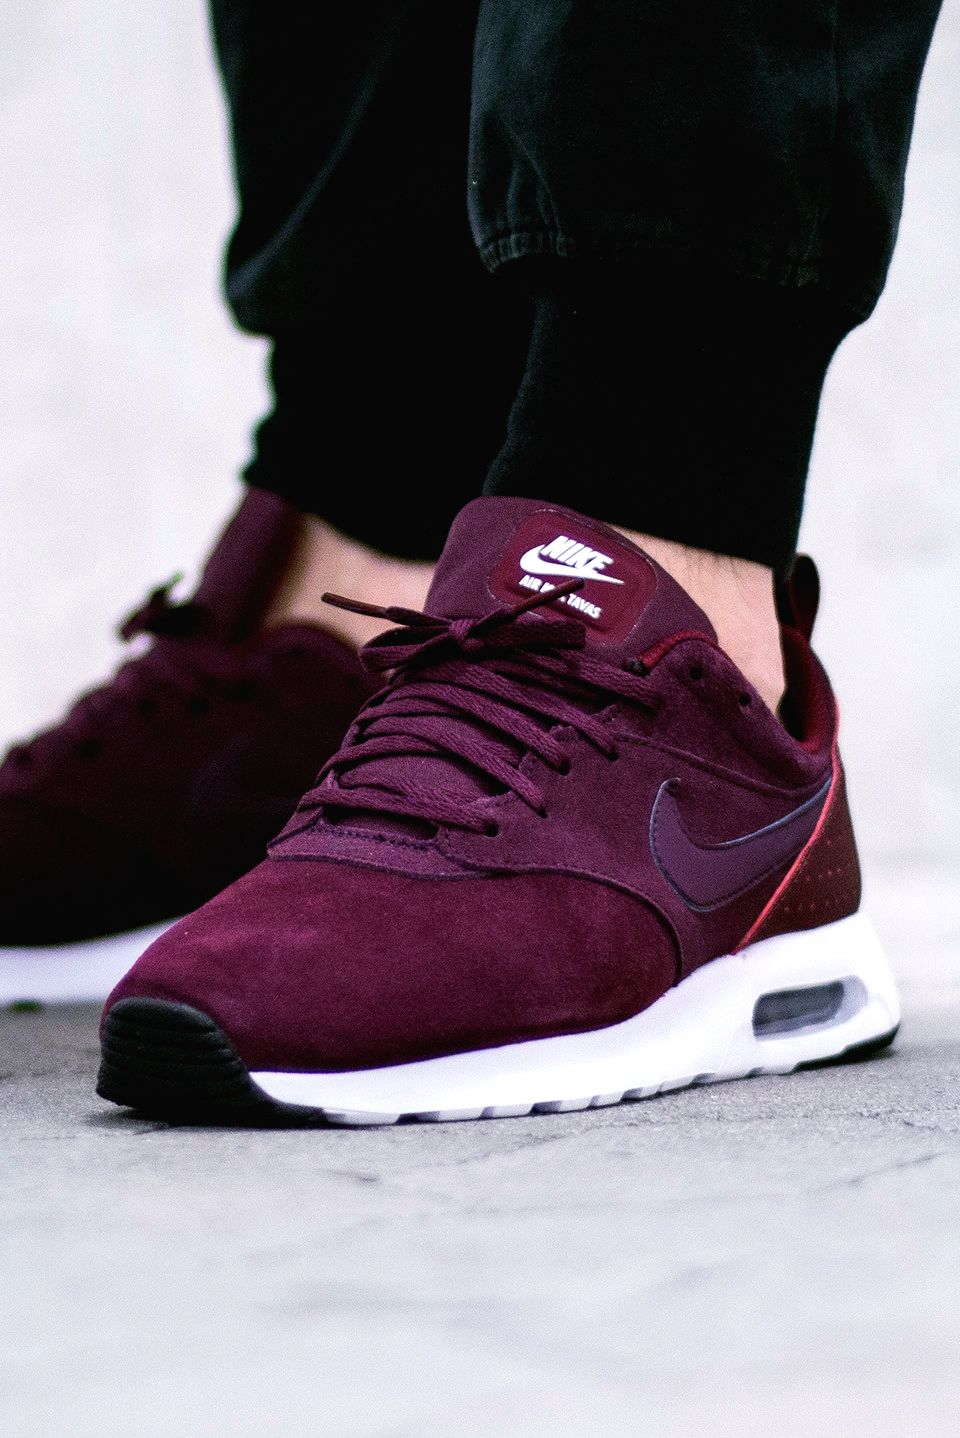 Nike Air Max Tavas LTR  Night Maroon  (via Kicks-daily.com)  761f54e9a51